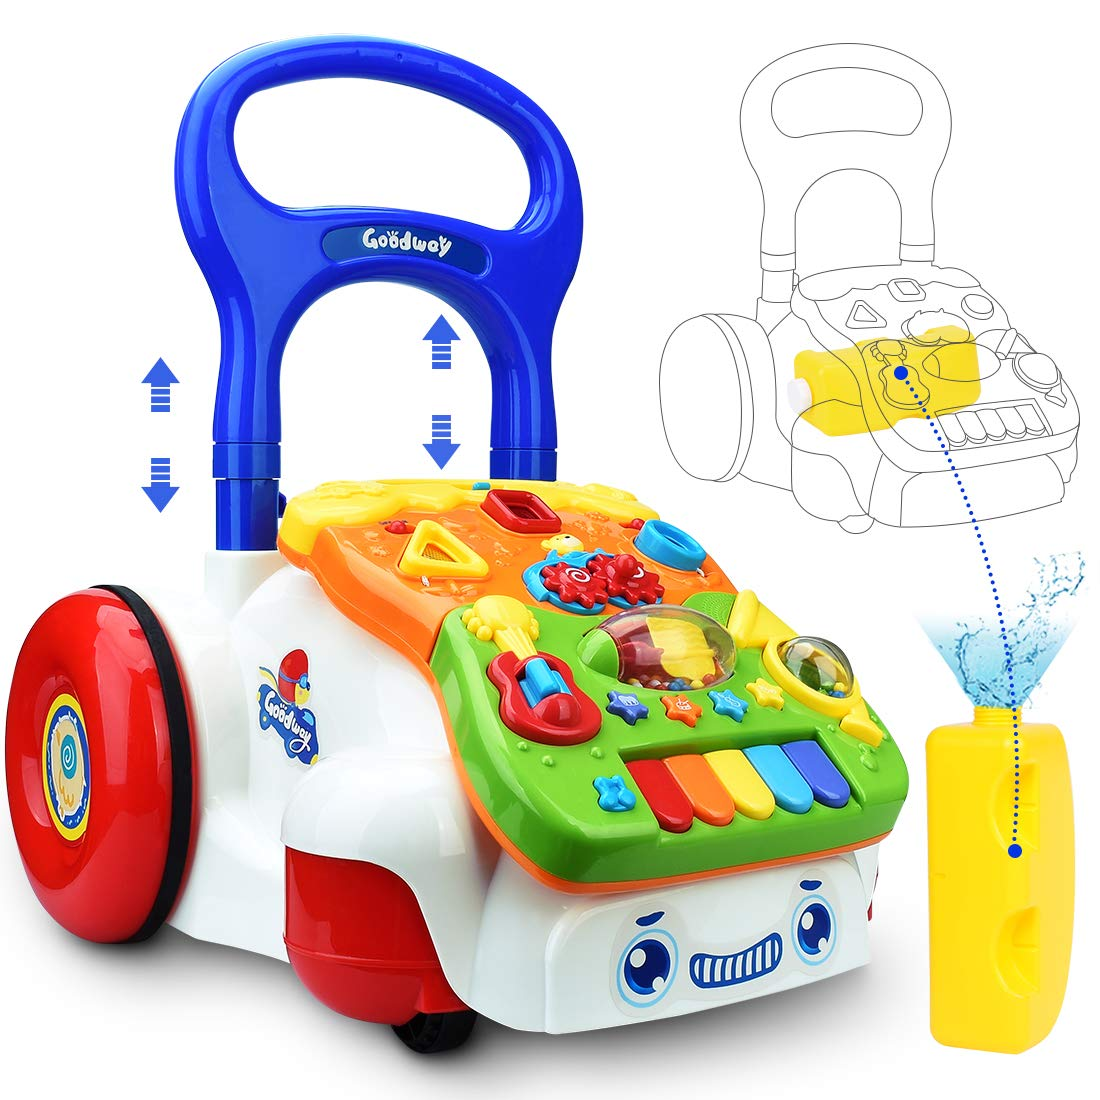 Top 15 Best Walking Toys for 1 Year Olds Mothers Should Consider 13